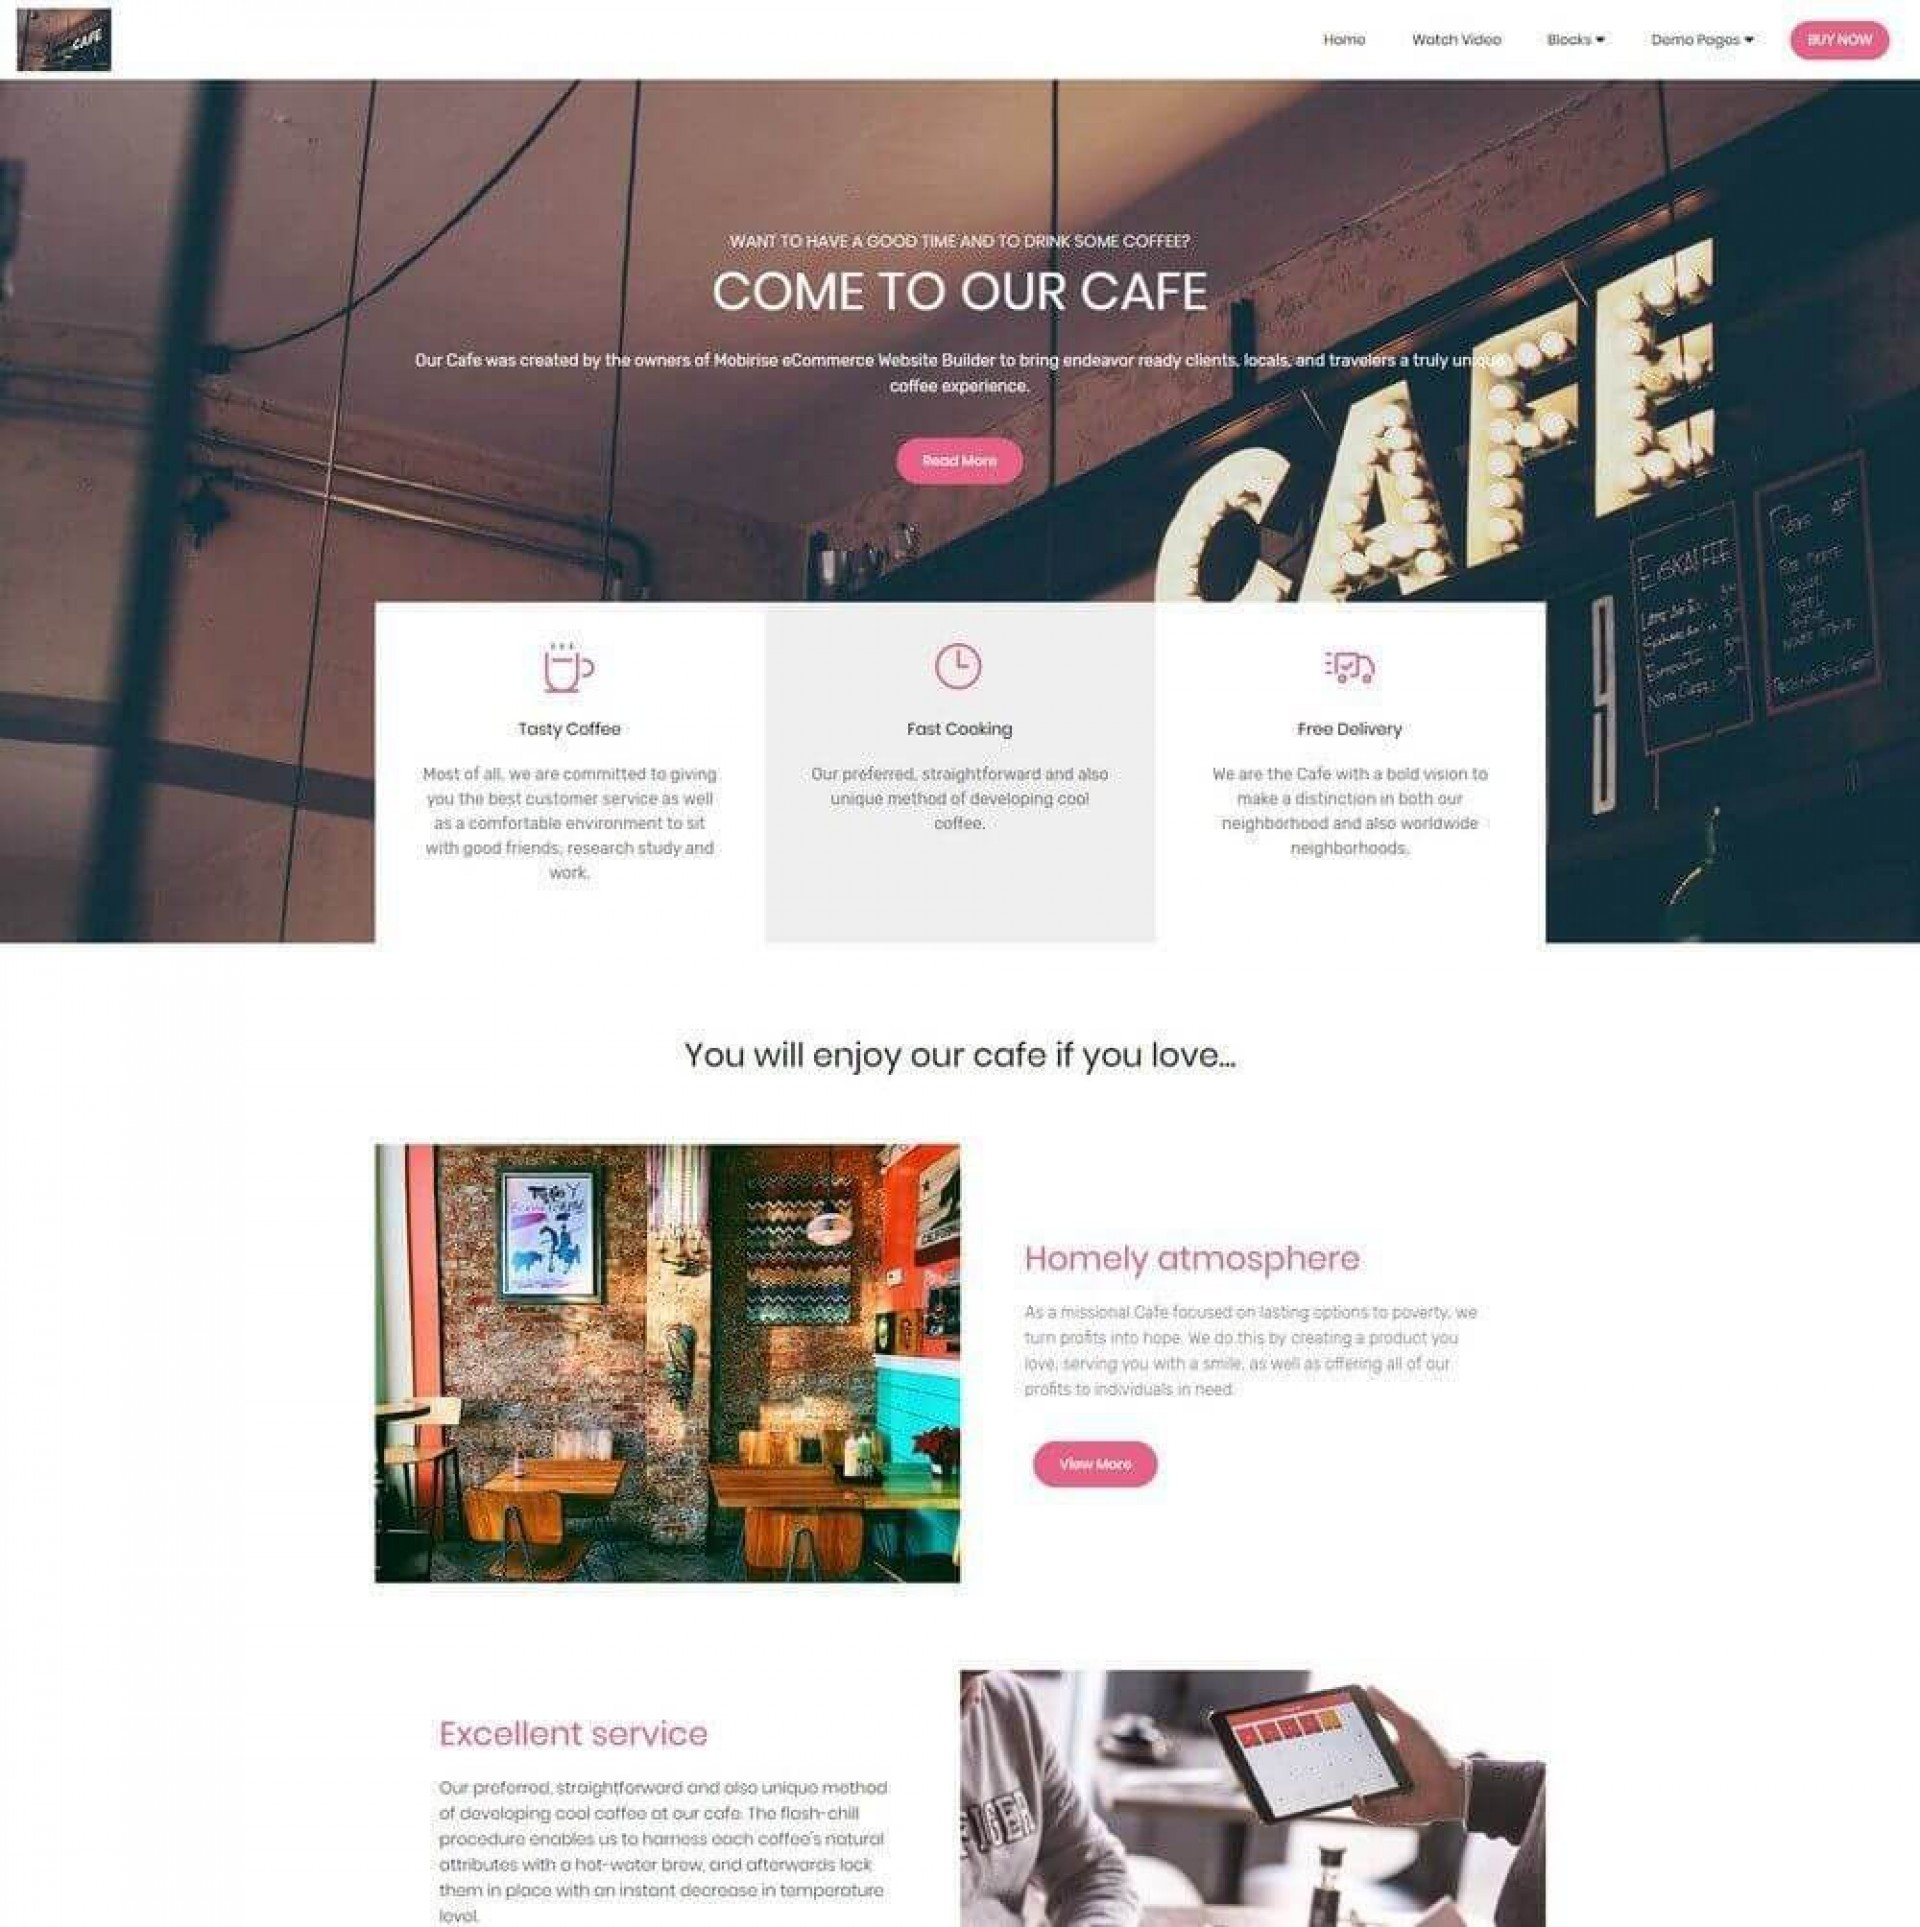 000 Fascinating Free Bootstrap Website Template Photo  Templates Responsive With Slider Download For Education Busines1920